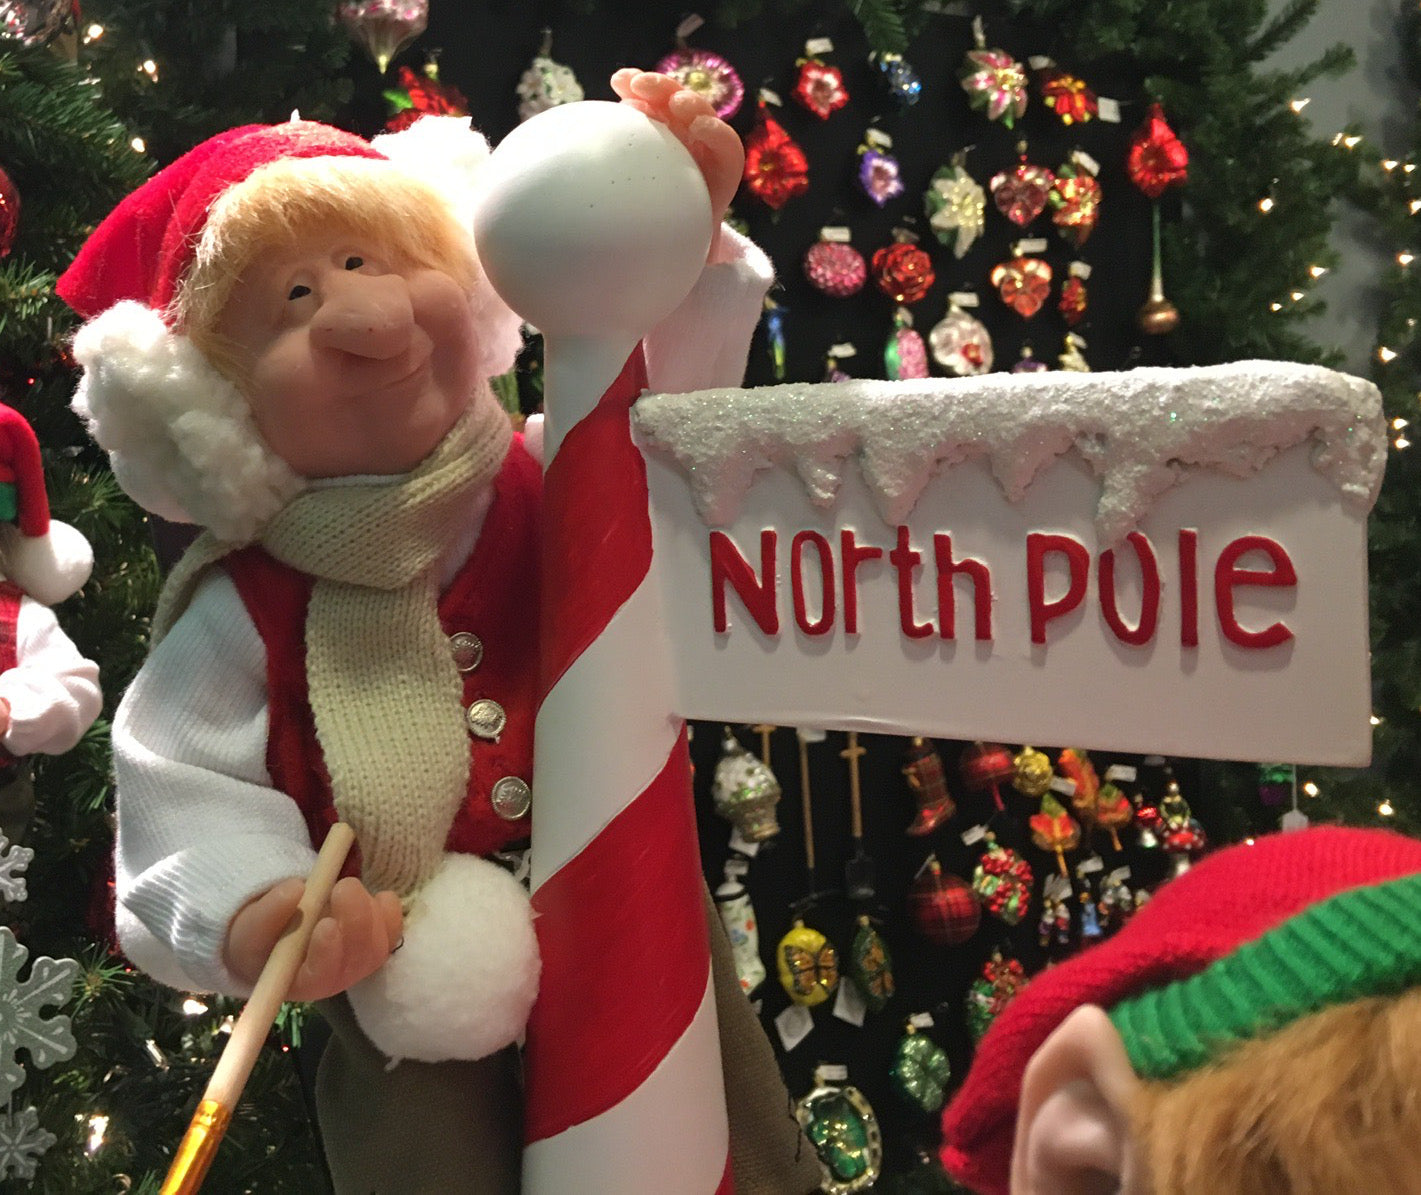 Reggie North Pole Painter Elf